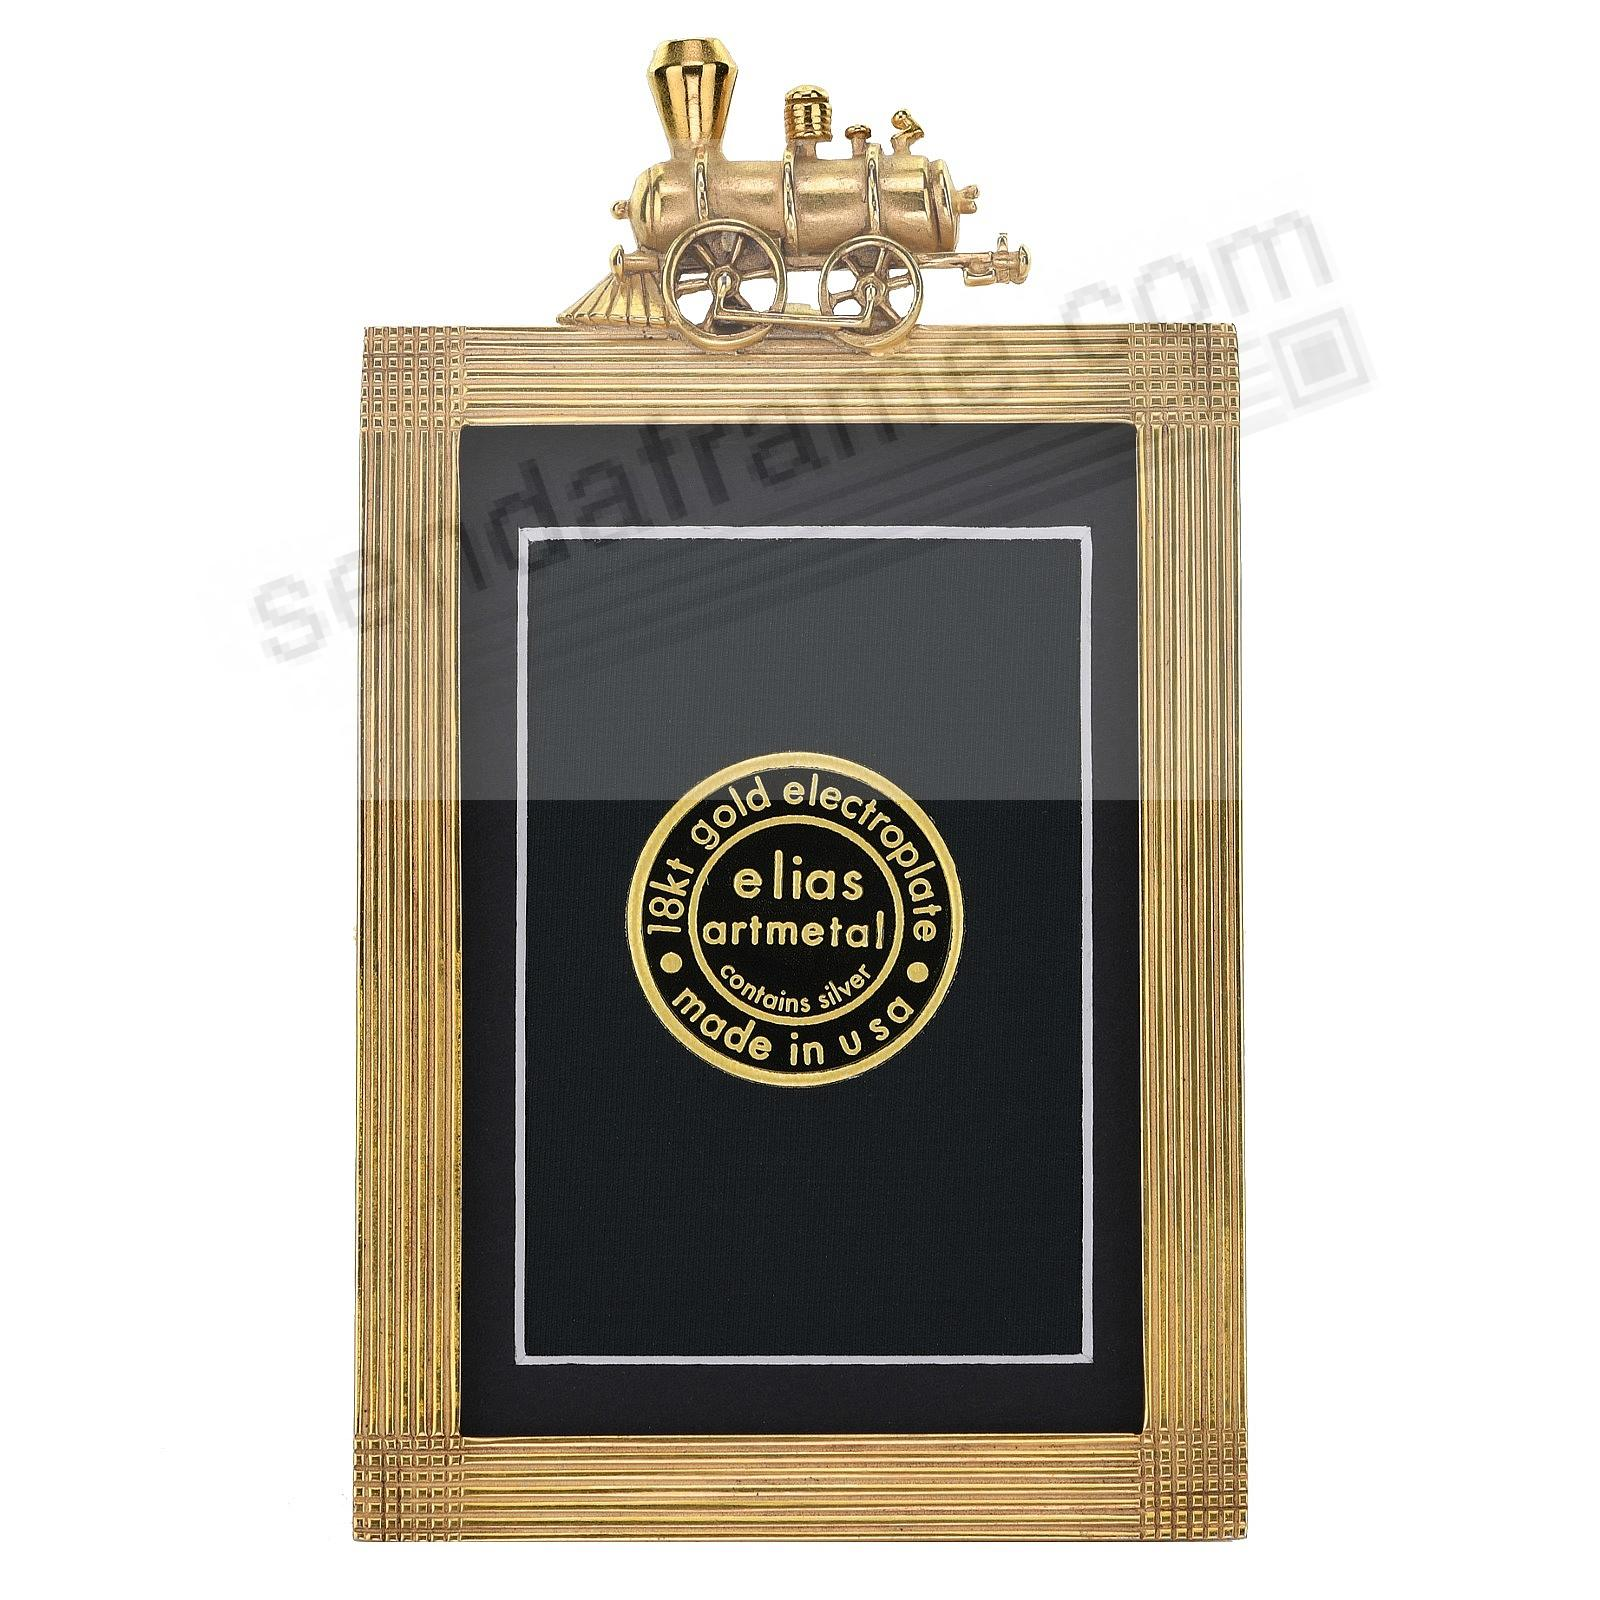 THE LITTLE ENGINE 18kt Gold Vermeil Over Pewter 3x4 frame by Elias Artmetal®